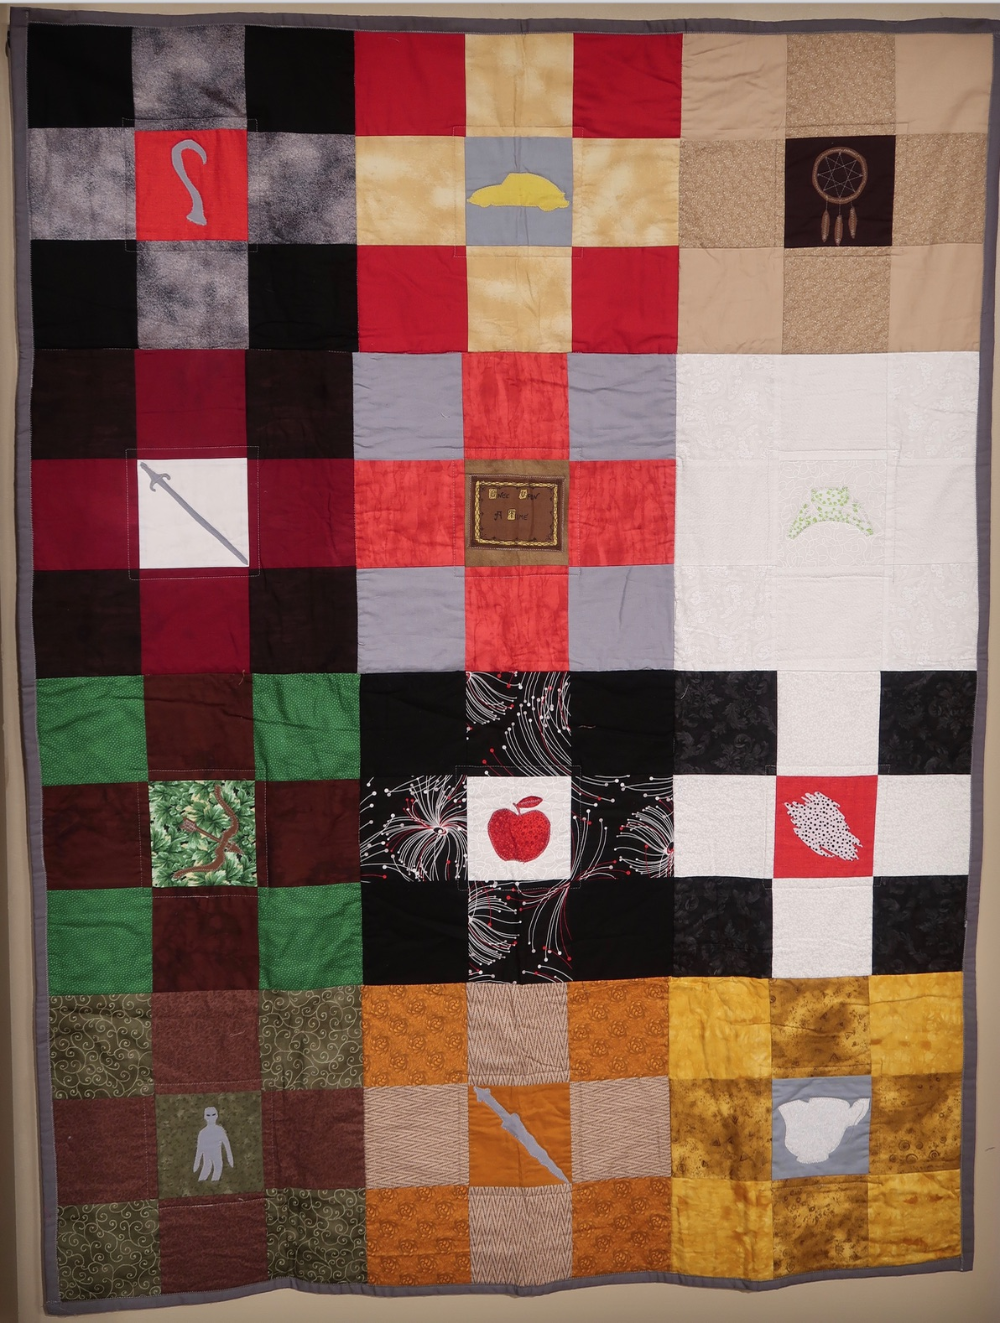 See Once Upon A Time A Quilt By Naavah Morrow Age 14 Quilts National Quilt Museum Morrow